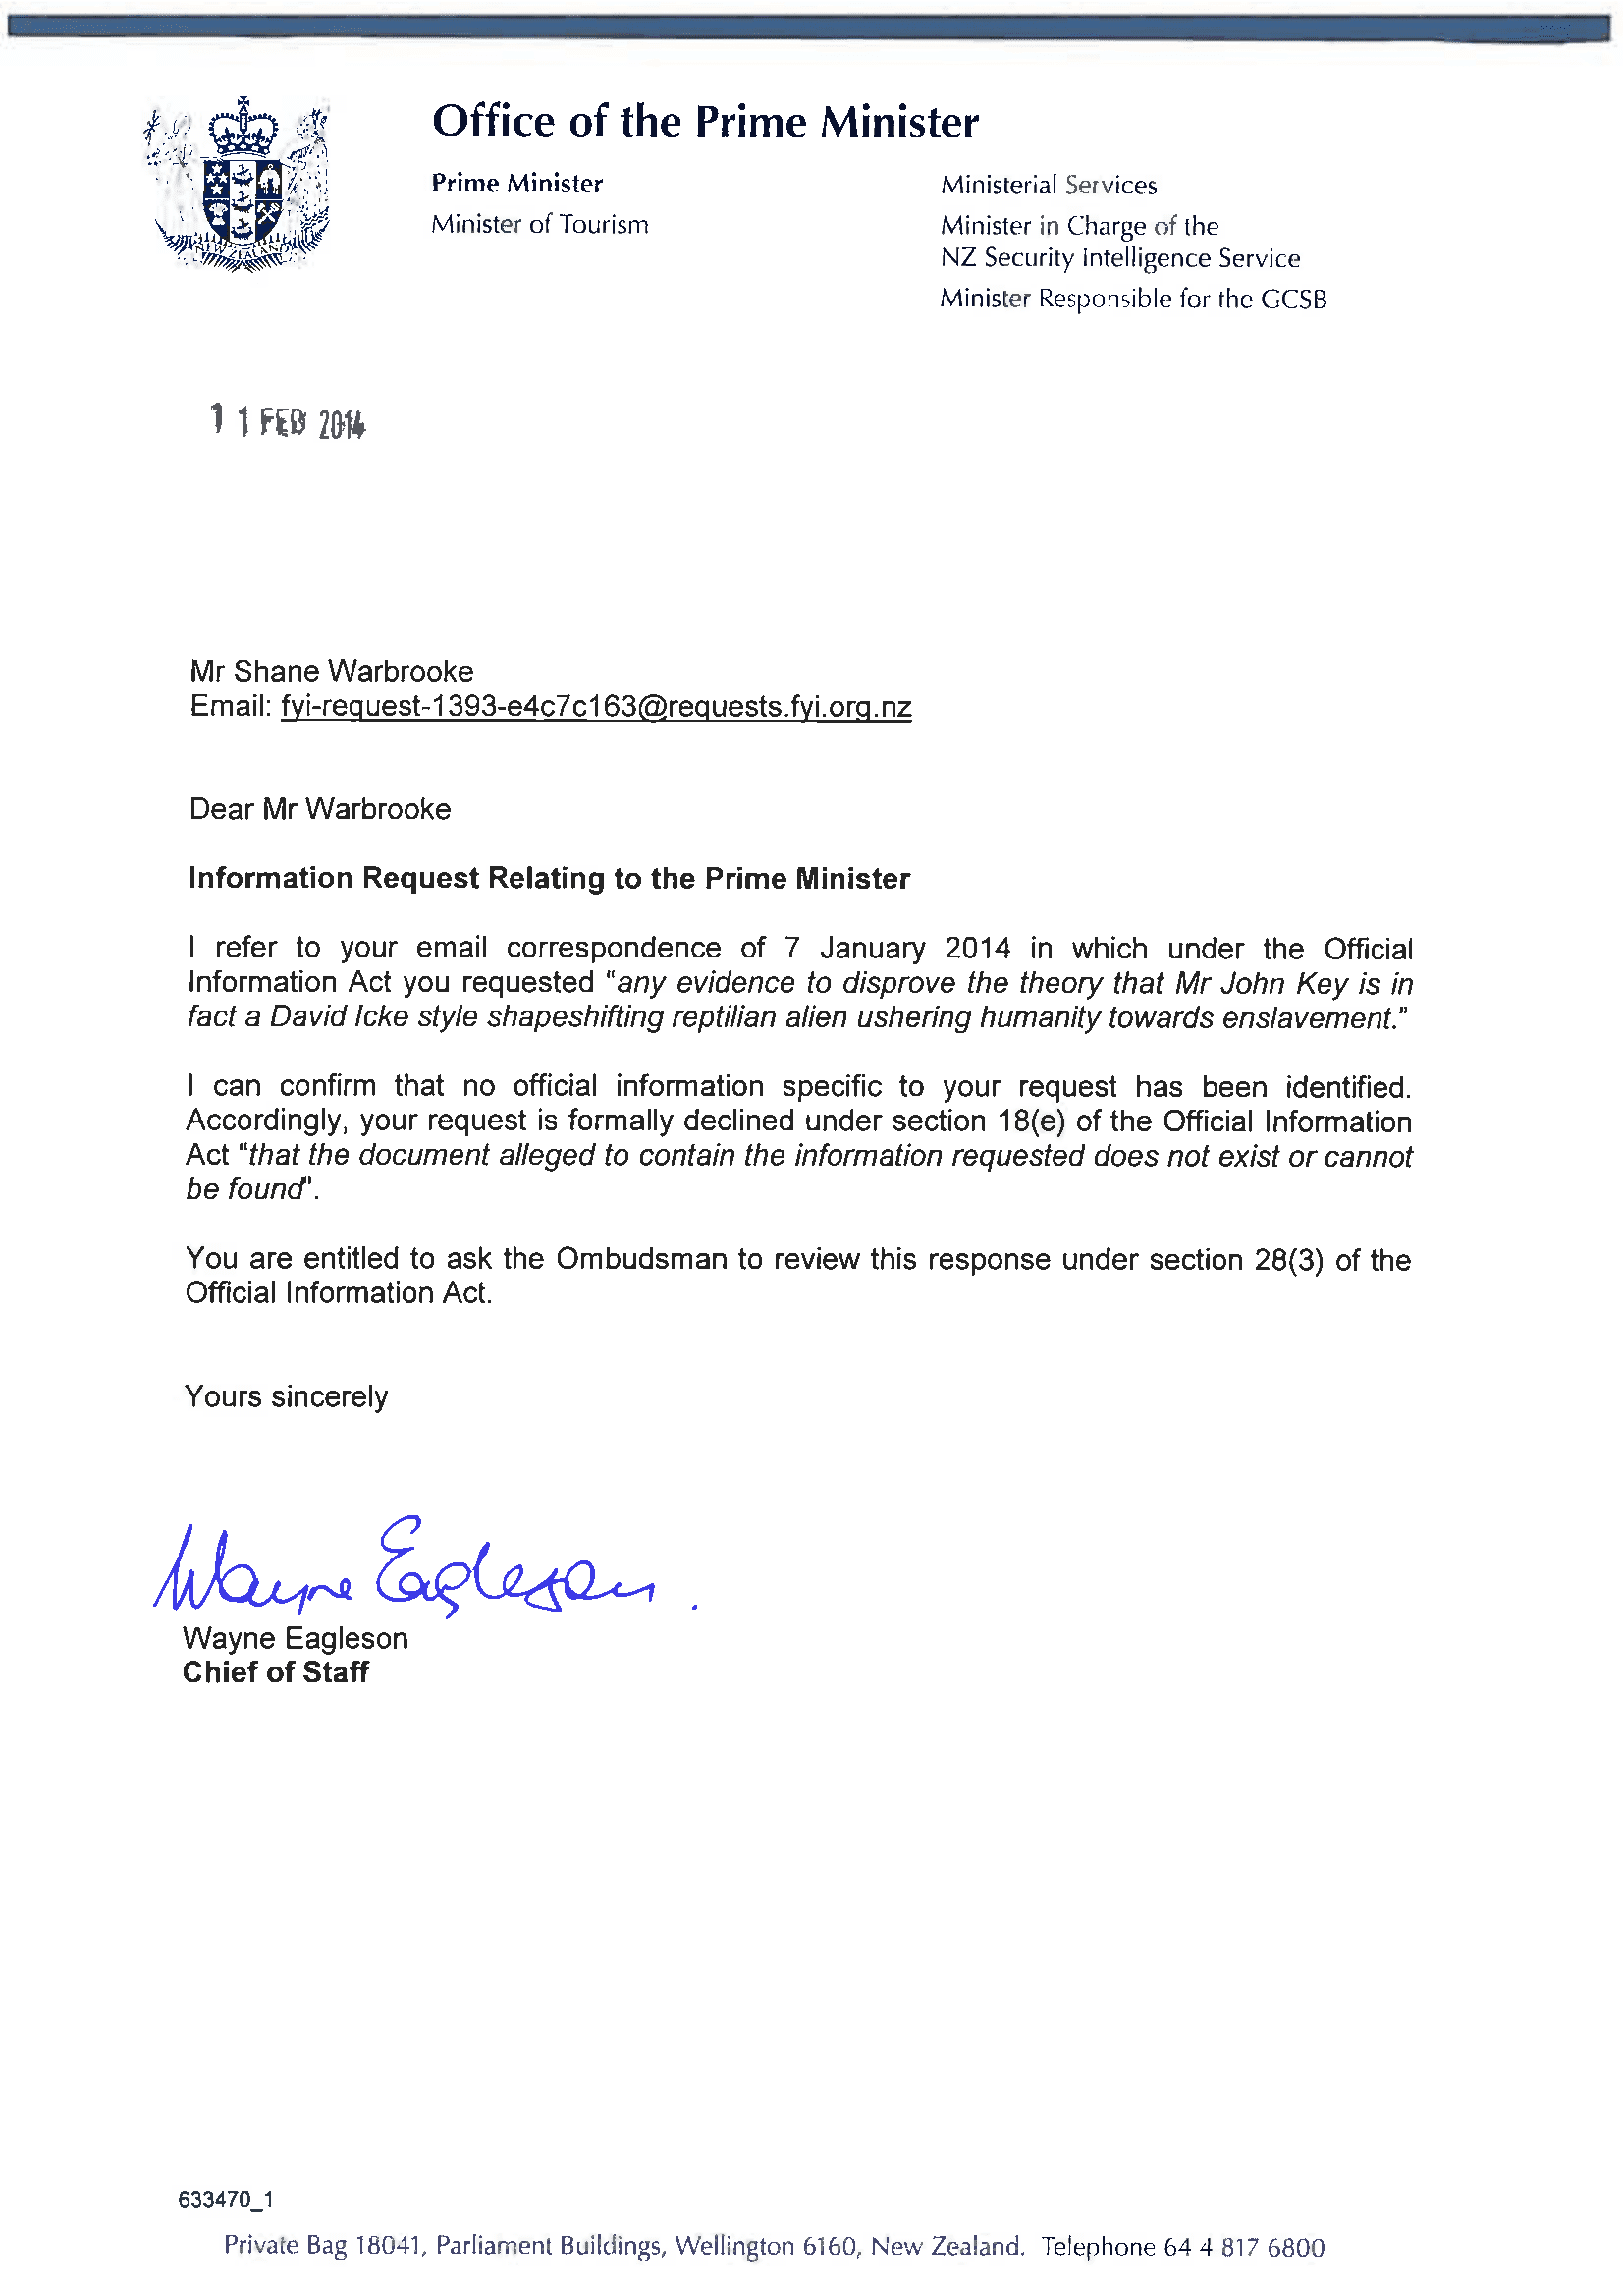 Information Request Relating to the Prime Minister